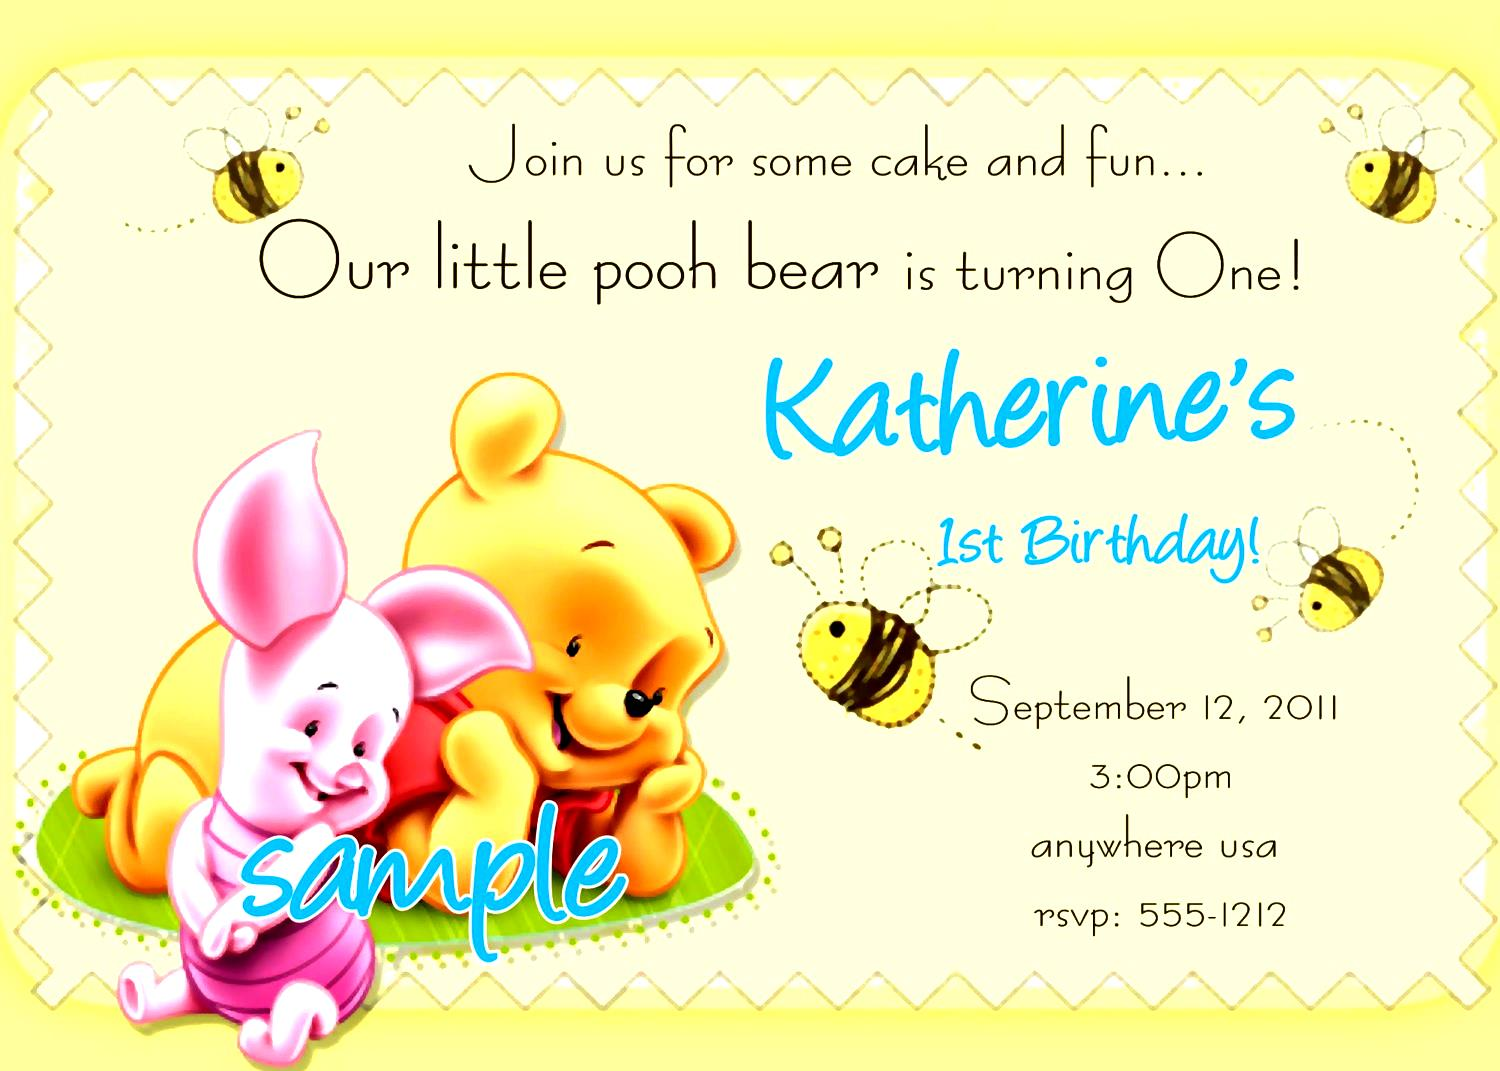 birthday invitation card sample design ; birthday-invitation-card-template-for-kids-winnie-the-pooh-themed-completing-simple-and-elegant-stunning-adding-by-awesome-design-looked-so-gorgeous